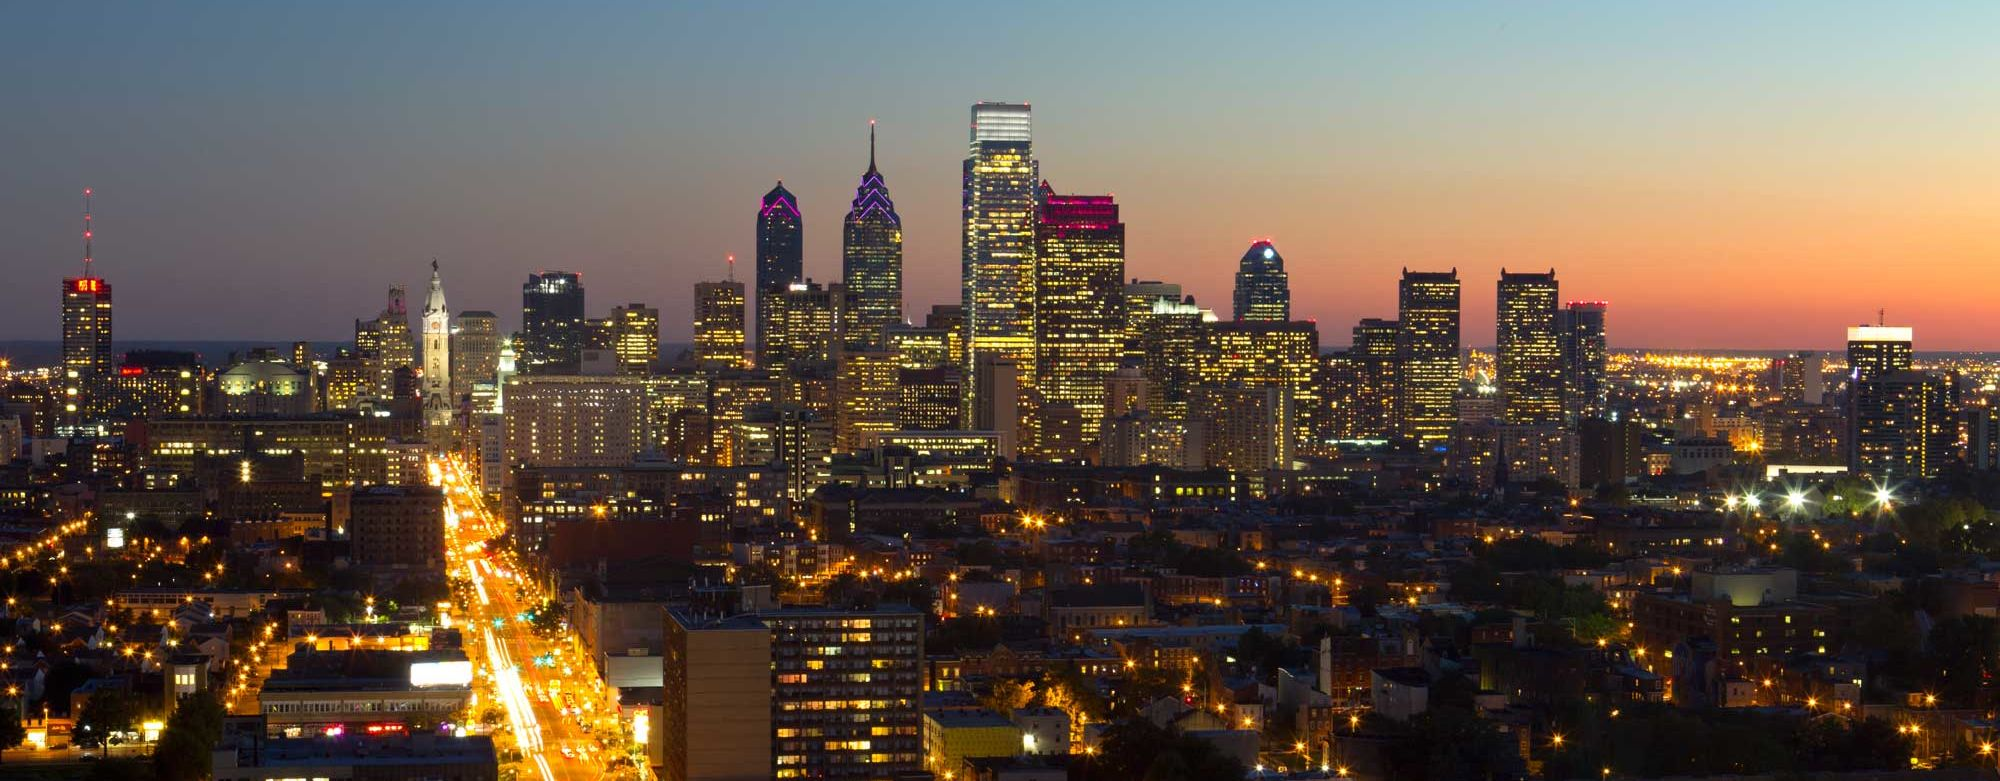 The Intensive English Language Program (IELP) located at Temple University in Philadelphia, Pennsylvania offers english language programs in an urban setting.